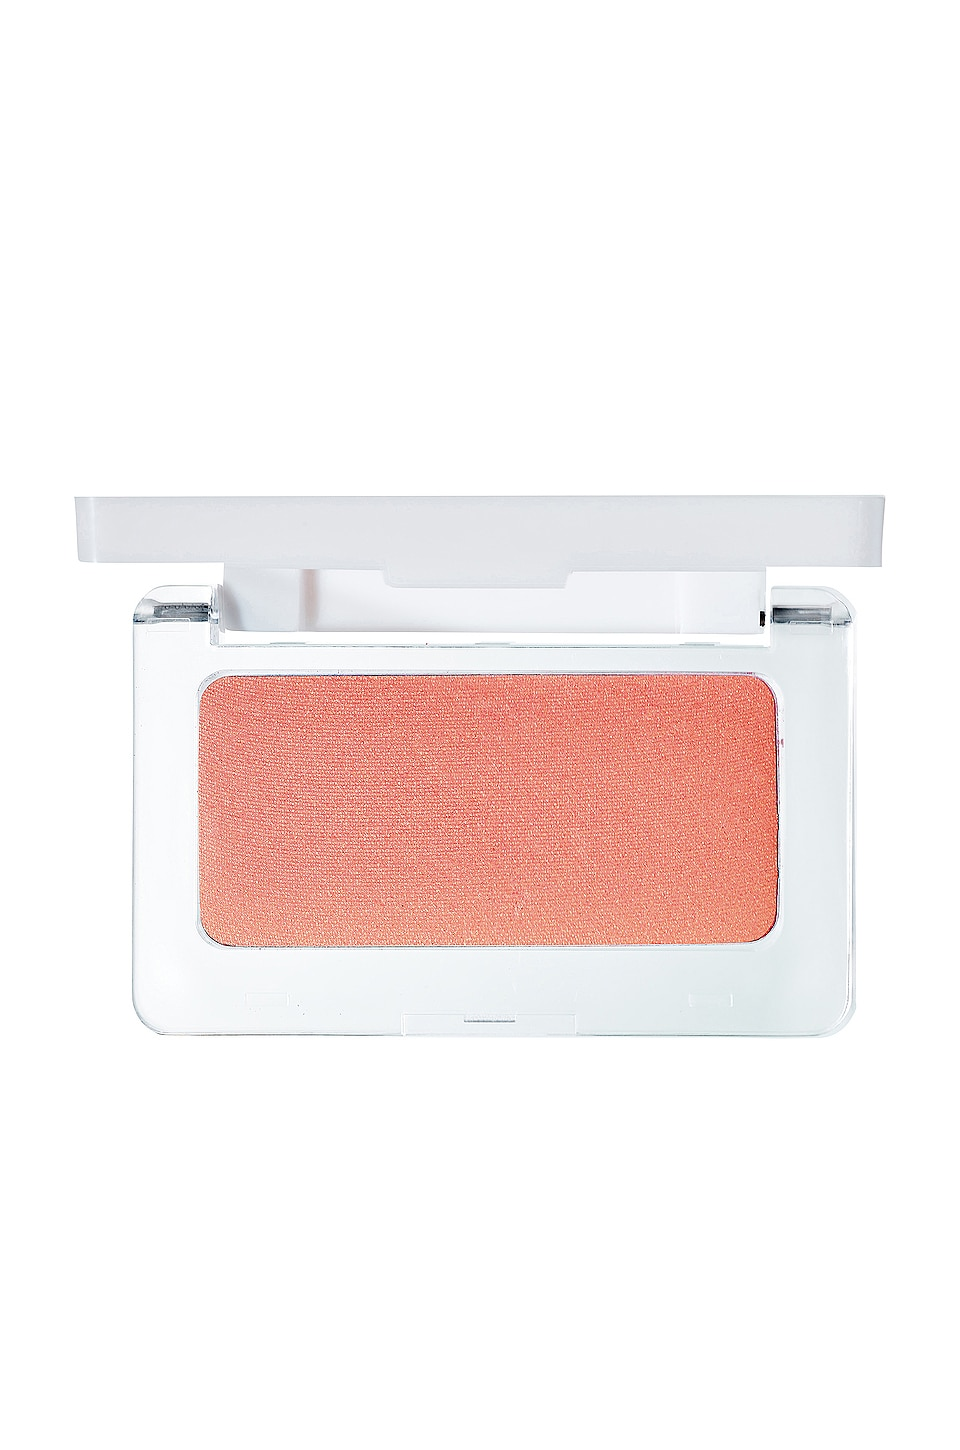 RMS Beauty Pressed Blush in Lost Angel